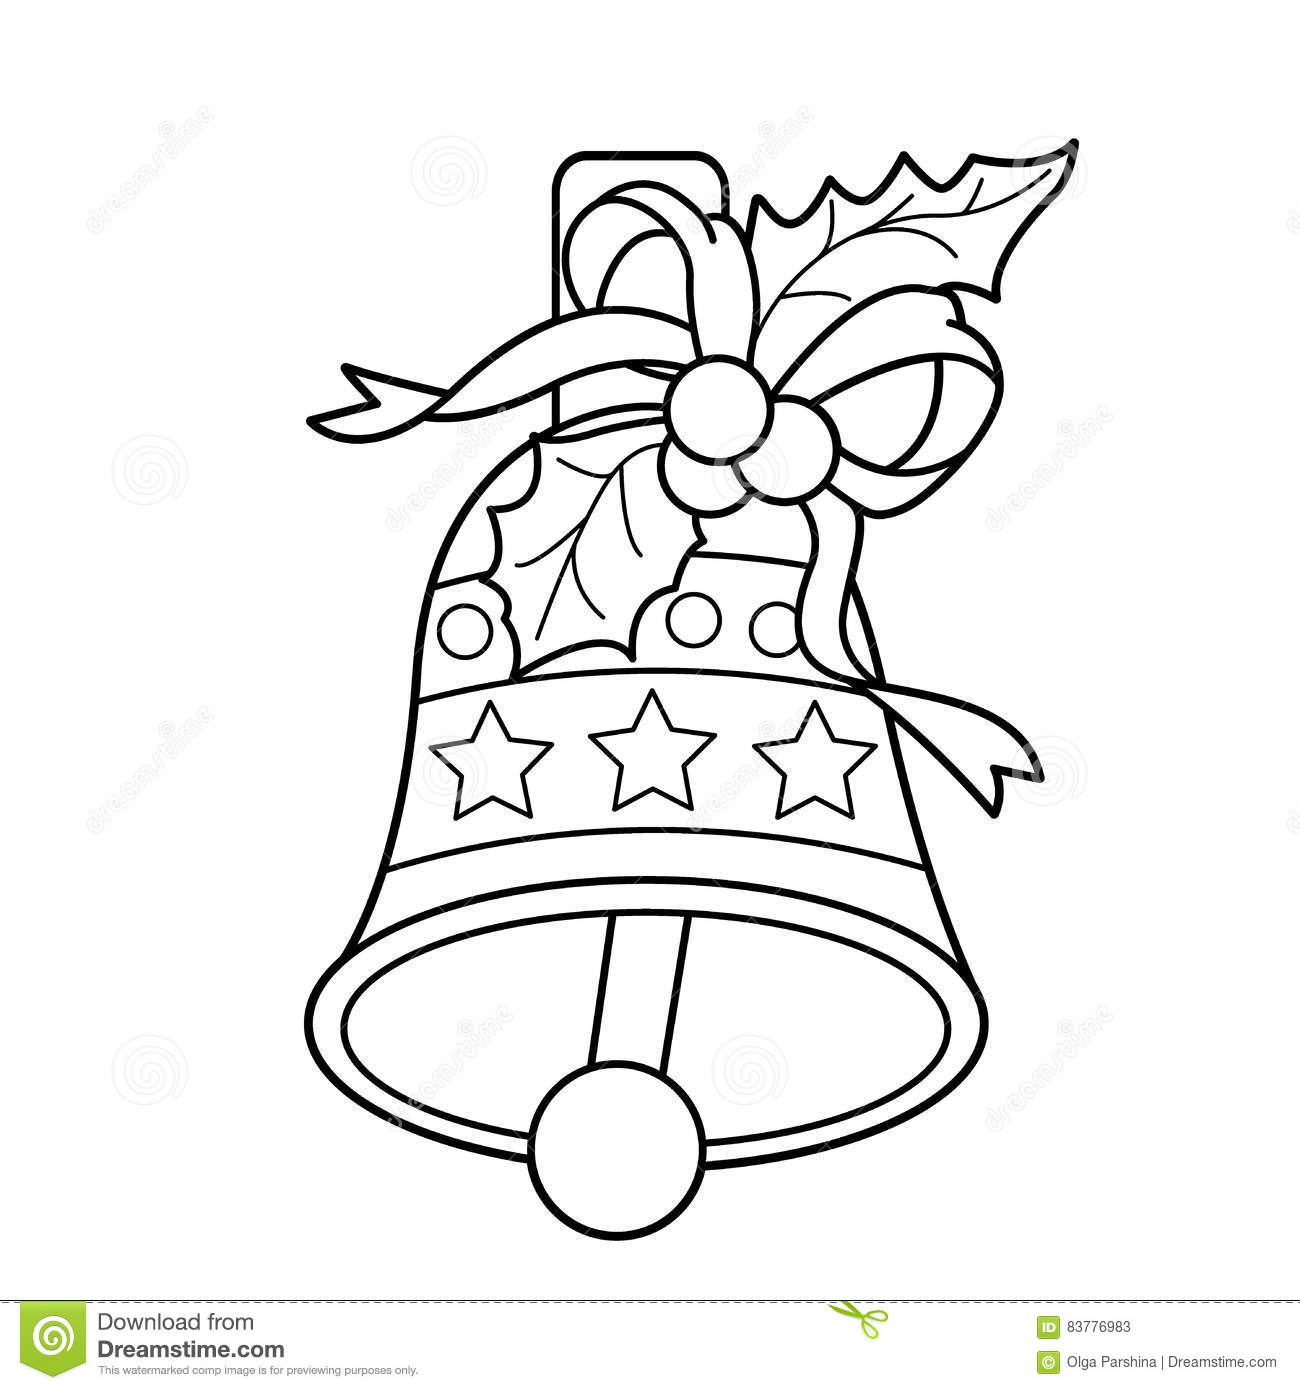 Coloring Page Outline Of Christmas Bell Christmas New Year Coloring Book For Kids Stock